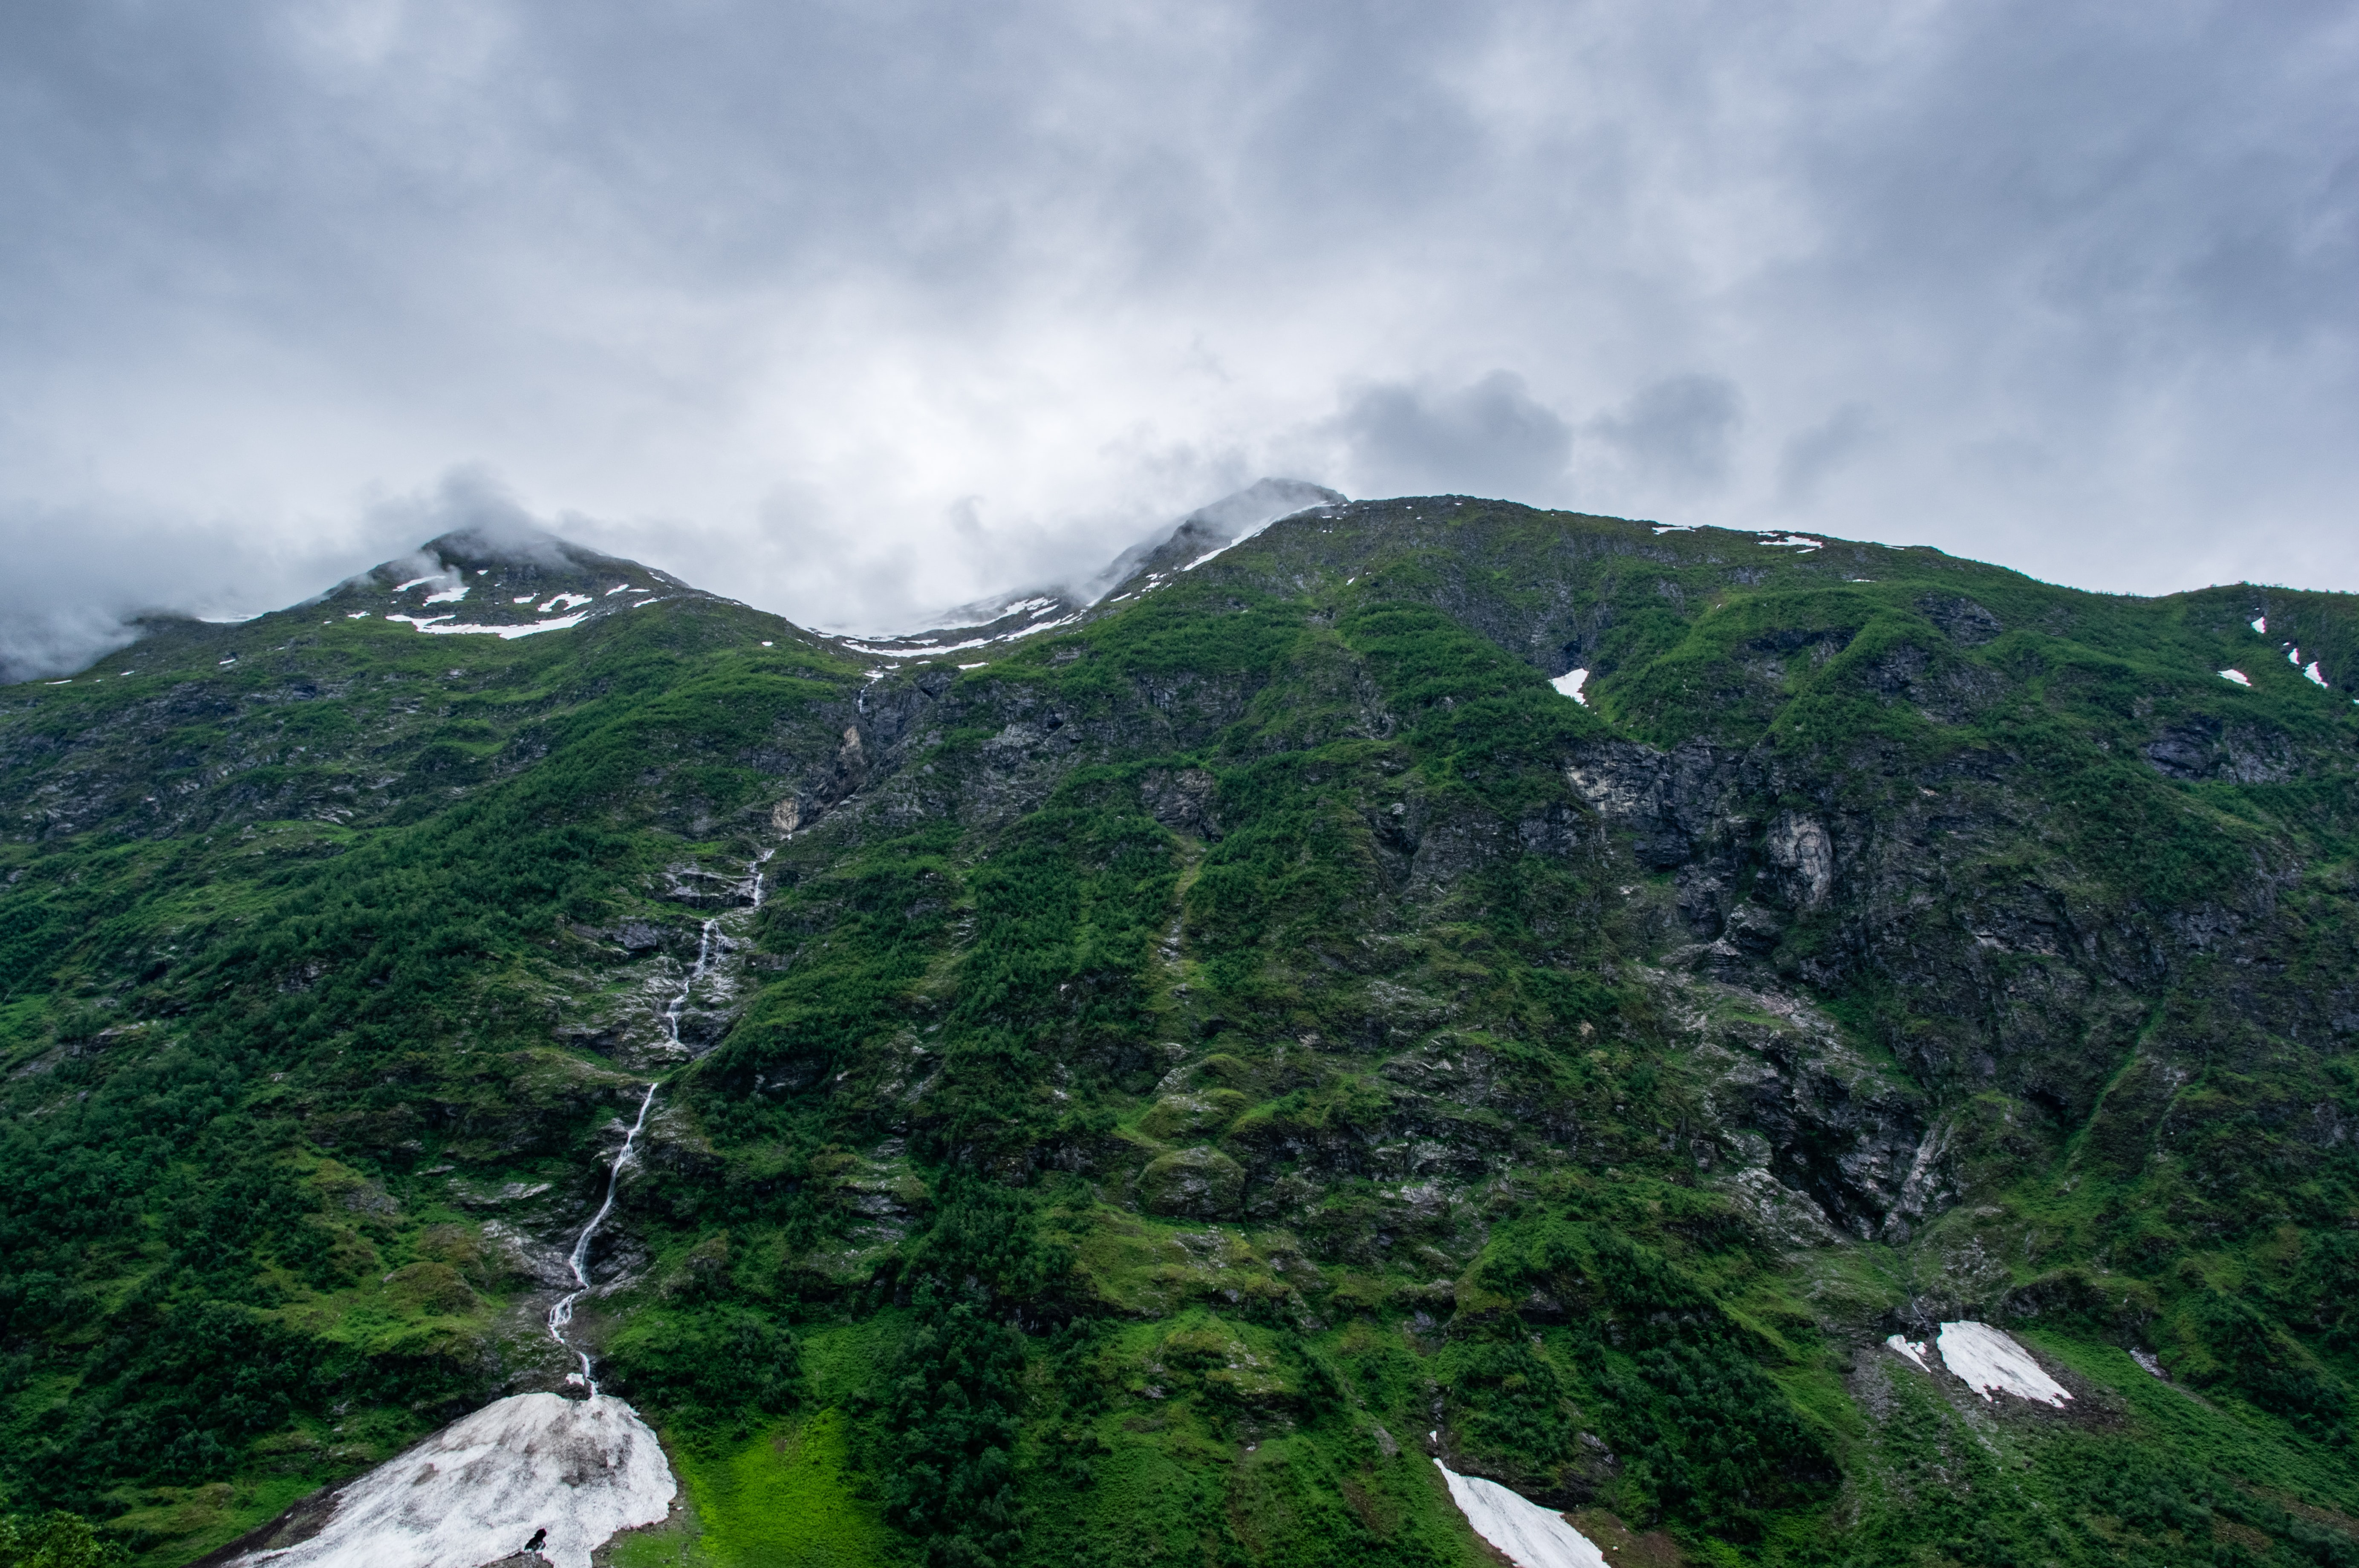 Grassy mountainside with waterfalls in Geiranger